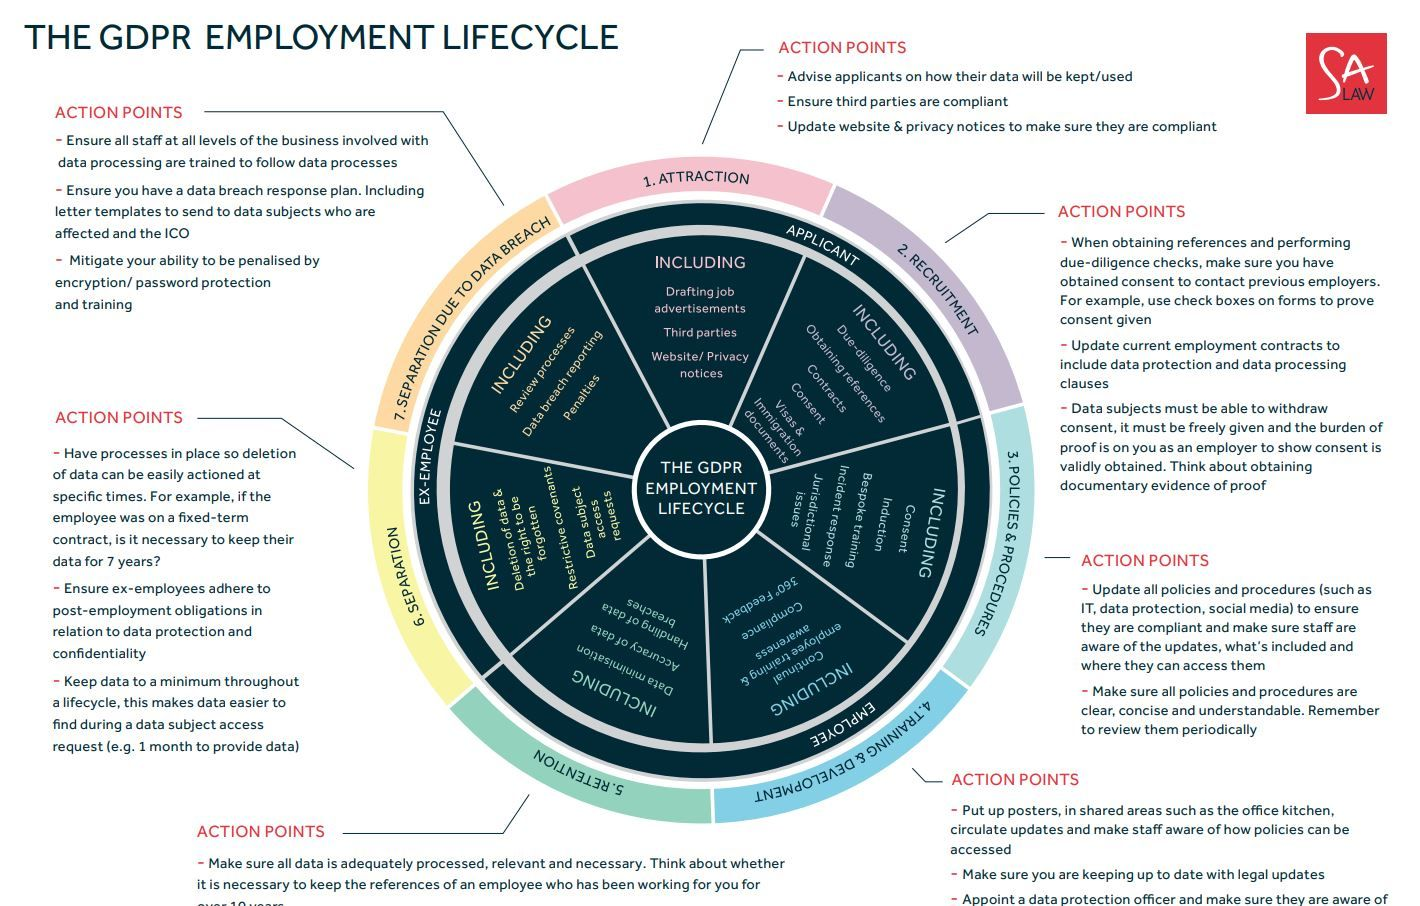 download our gdpr employment lifecycle and make sure you and your company remain compliant throughout an